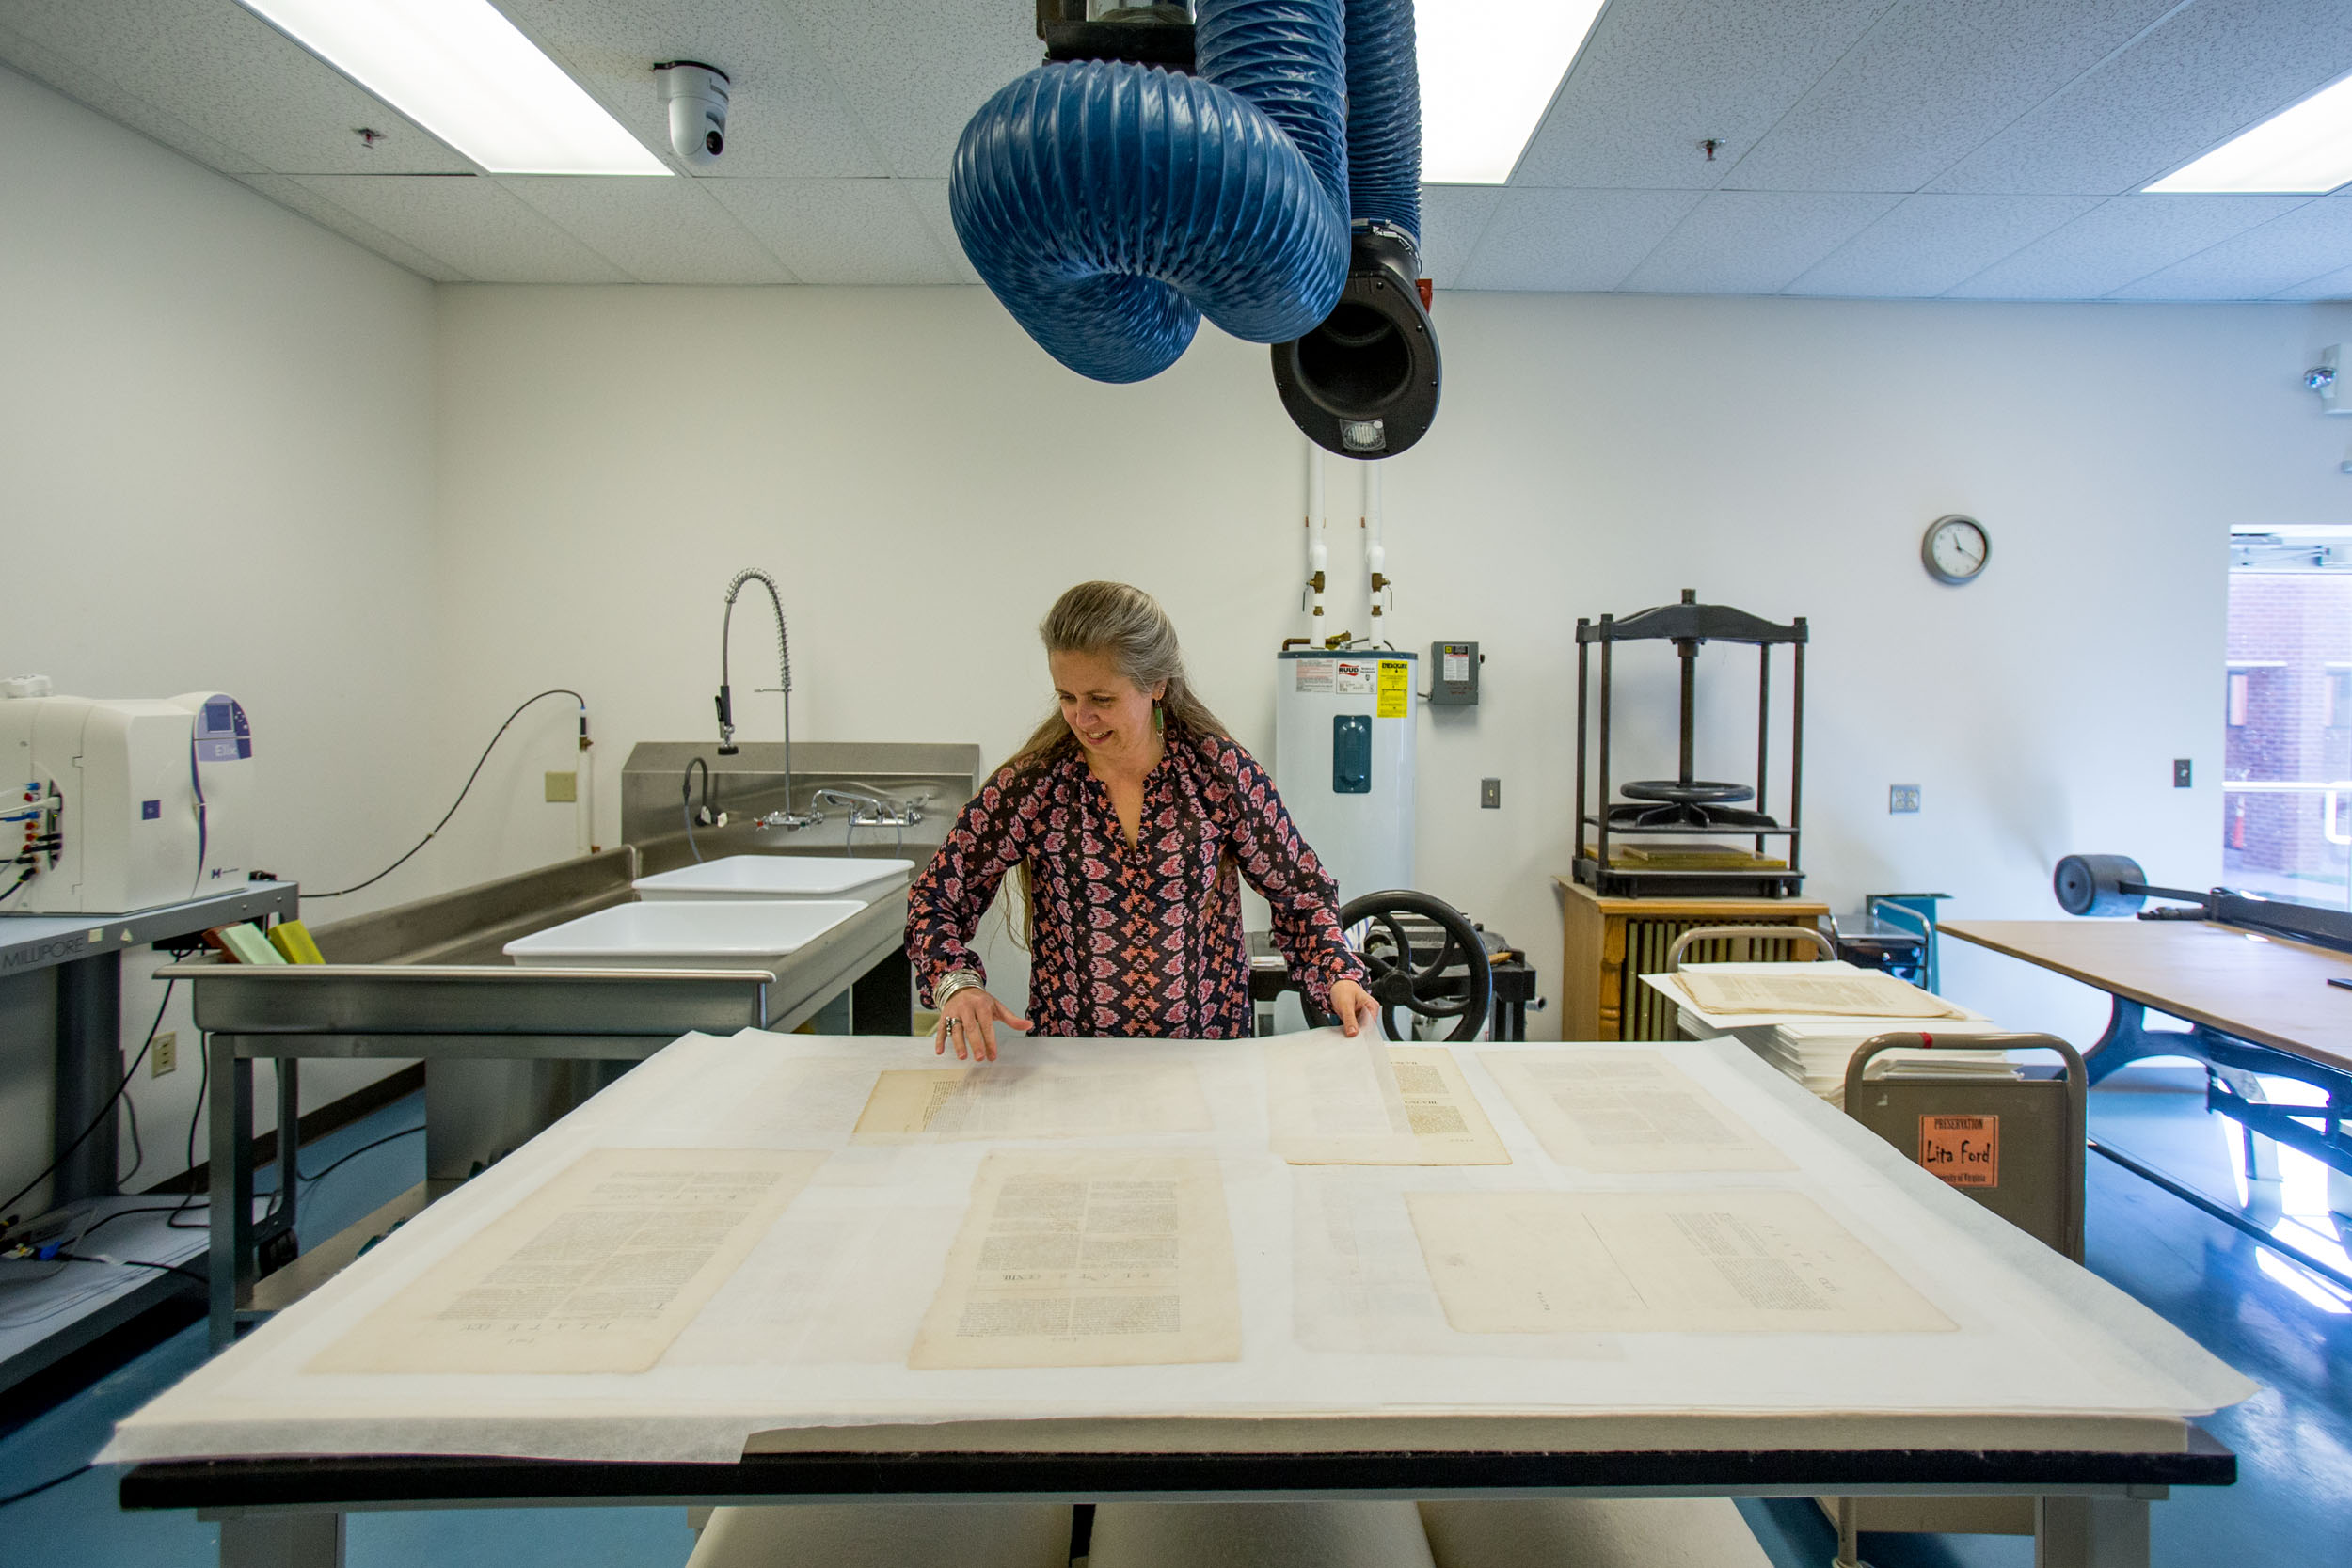 Gilligan lays out newly cleaned pages of Carter's original volume. Photos by Sanjay Suchak / University Communications